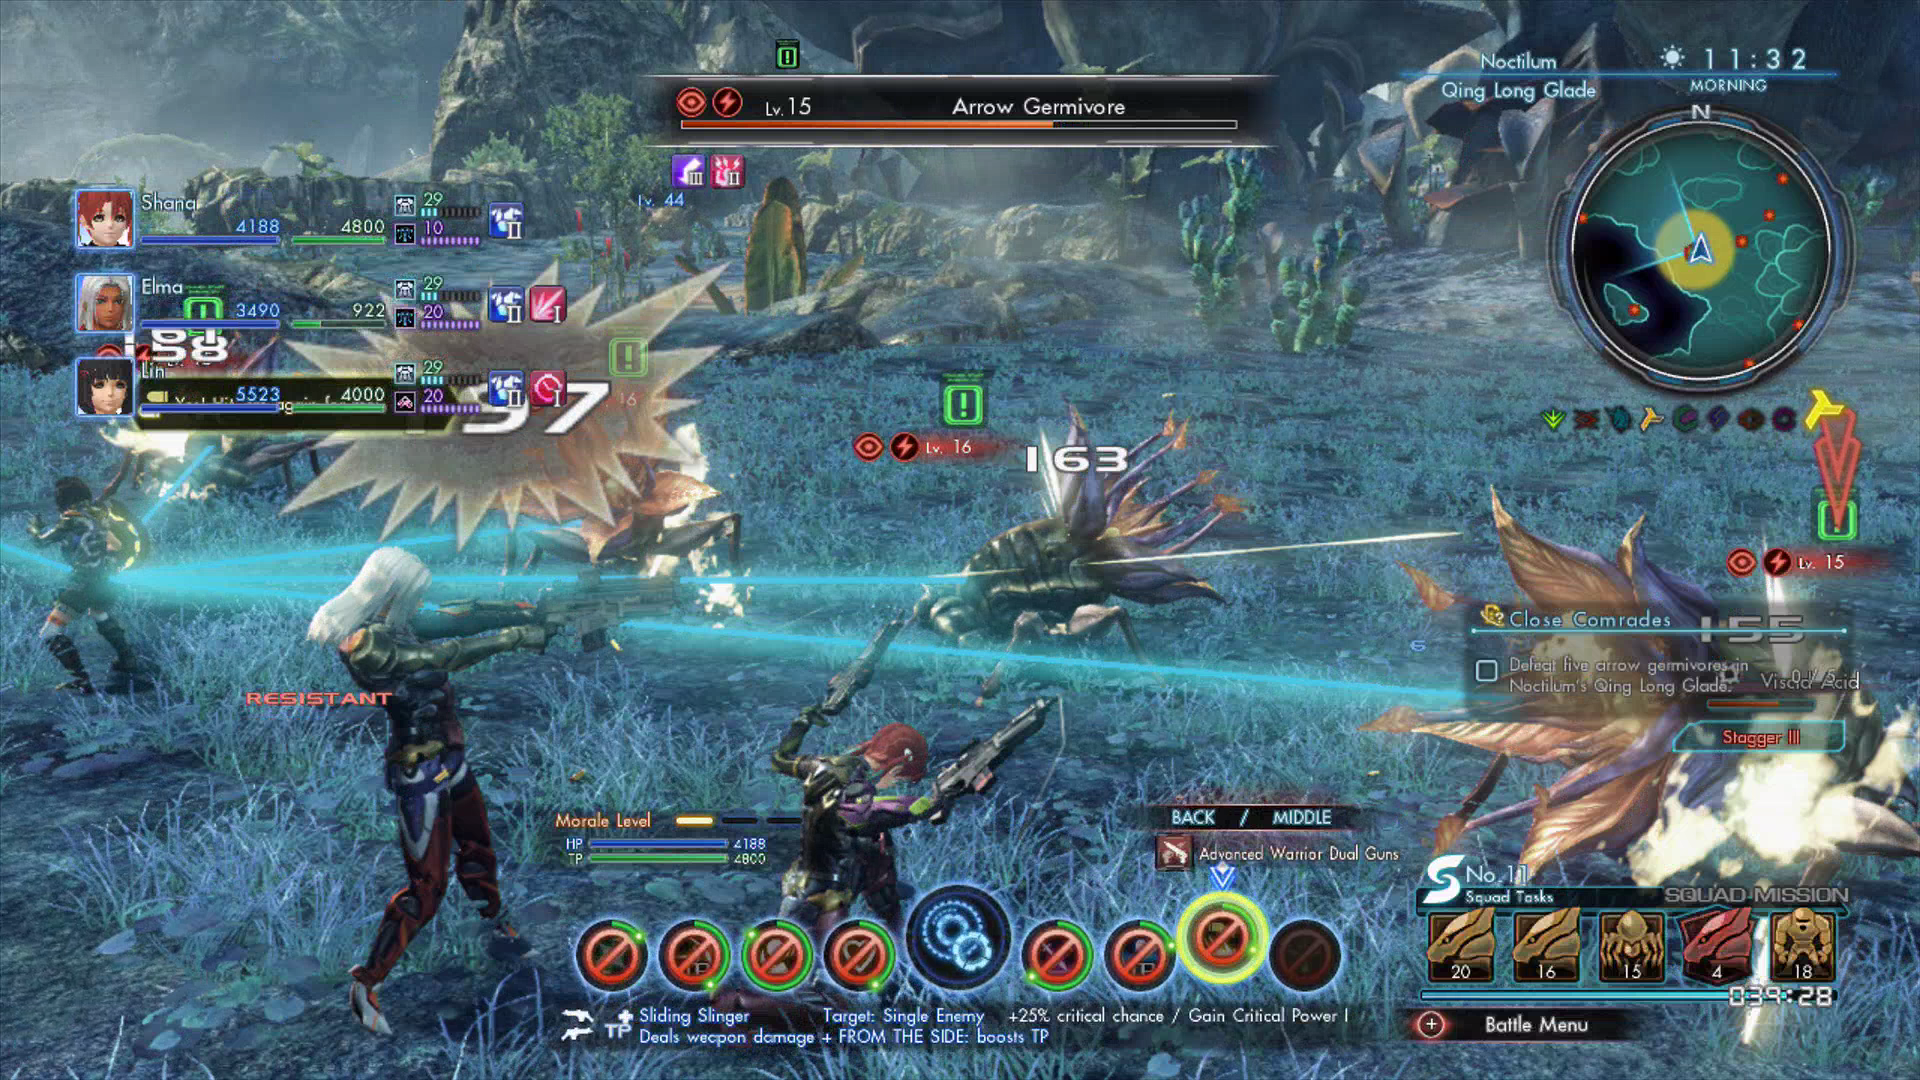 Xenoblade chronicles x review a mediocre jrpg in a aaa wrapper xenoblade chronicles x gumiabroncs Image collections